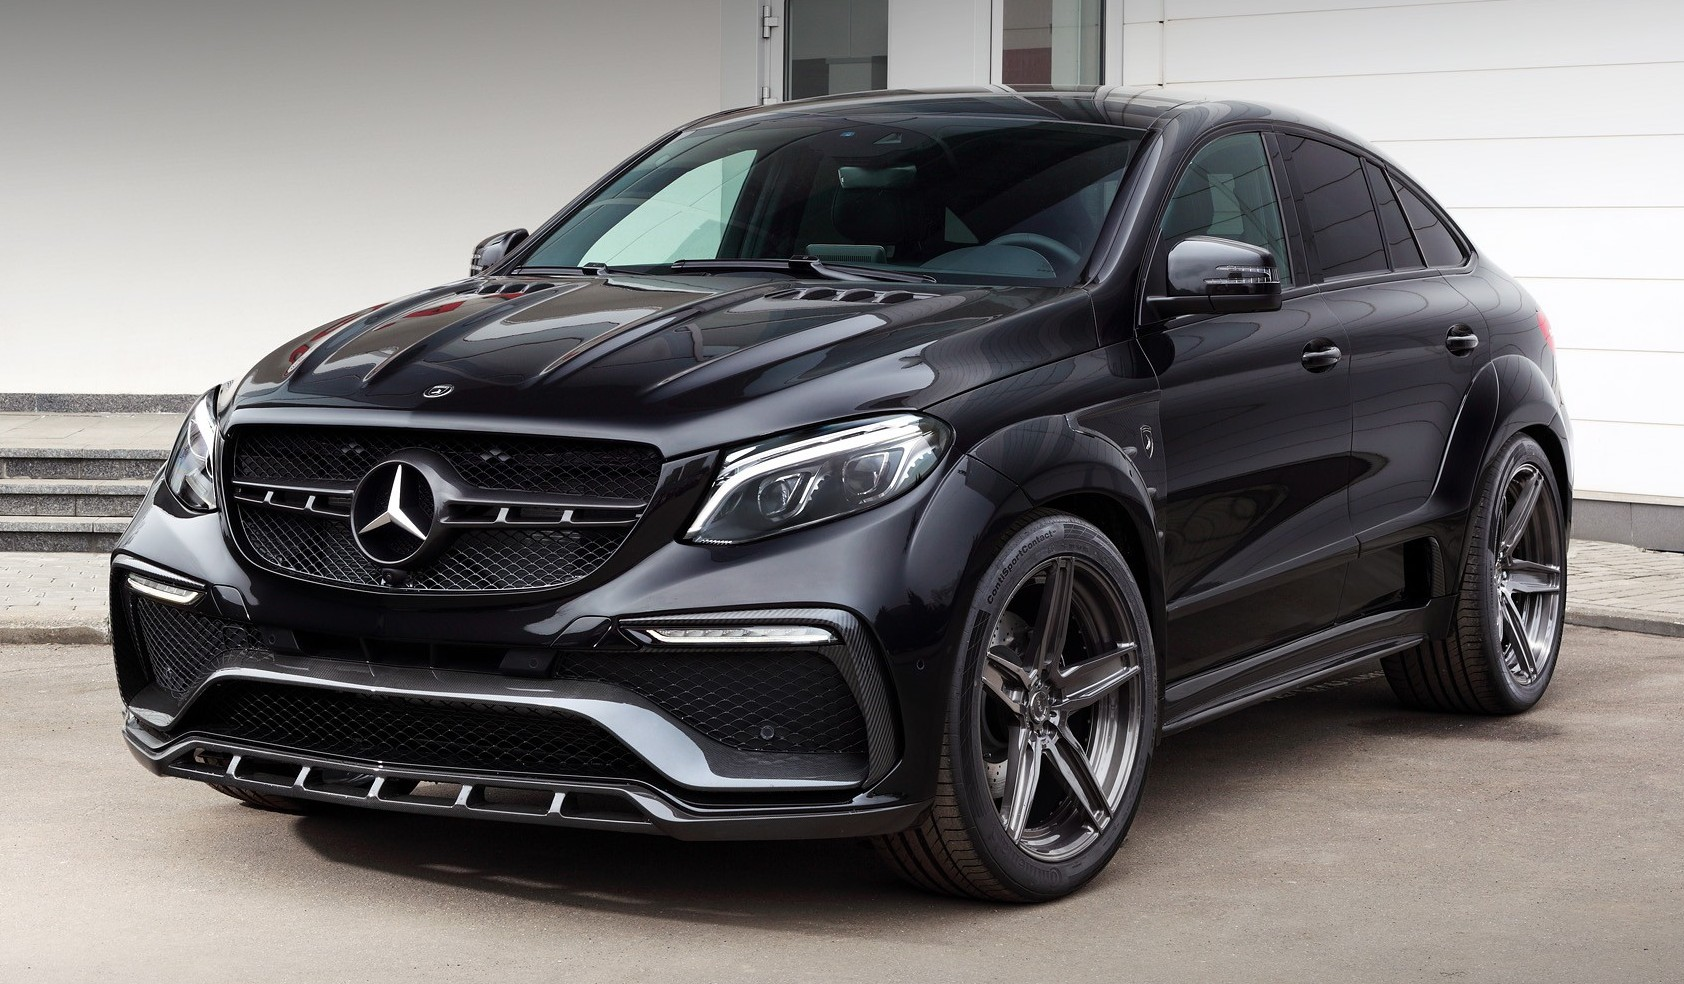 Mercedes benz gle coupe gets topcar styling kit for Mercedes benz exterior car care kit